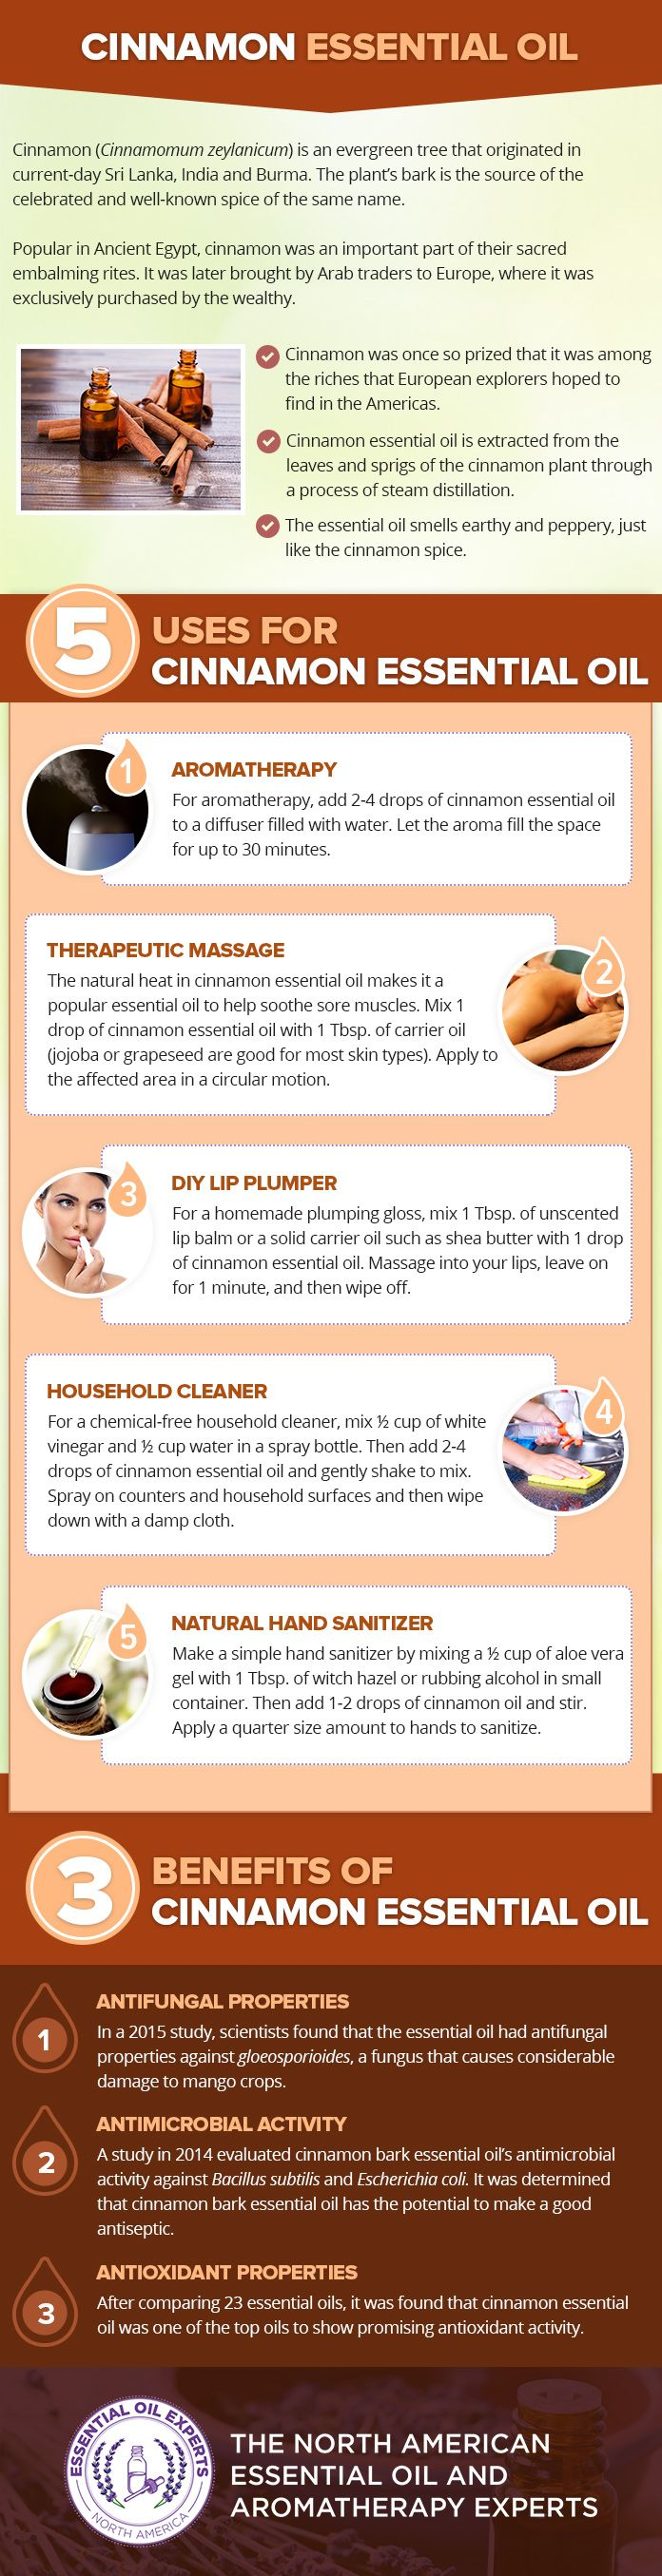 Cinnamon Essential Oil Uses & Benefits Only pay when your order is dispatched www.essentialoilproducts.co.uk